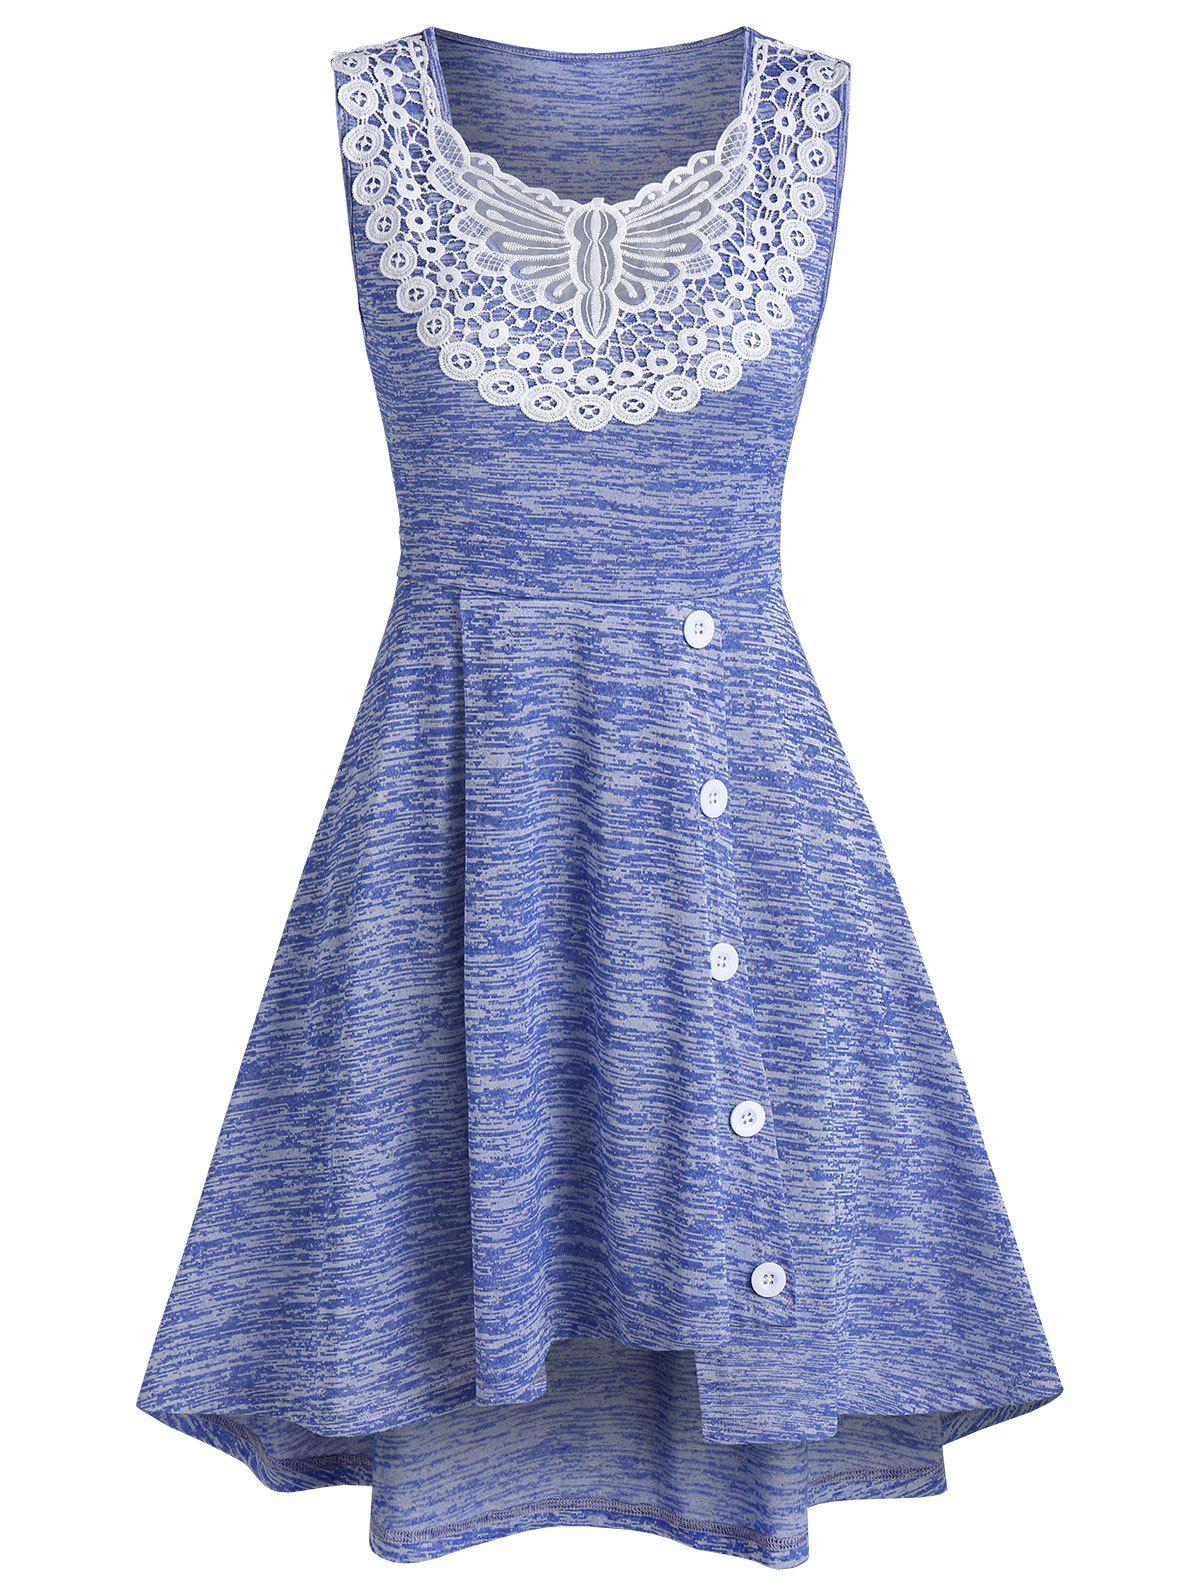 Space Dye Print Asymmetric Butterfly Lace Insert Dress - LIGHT SLATE BLUE M